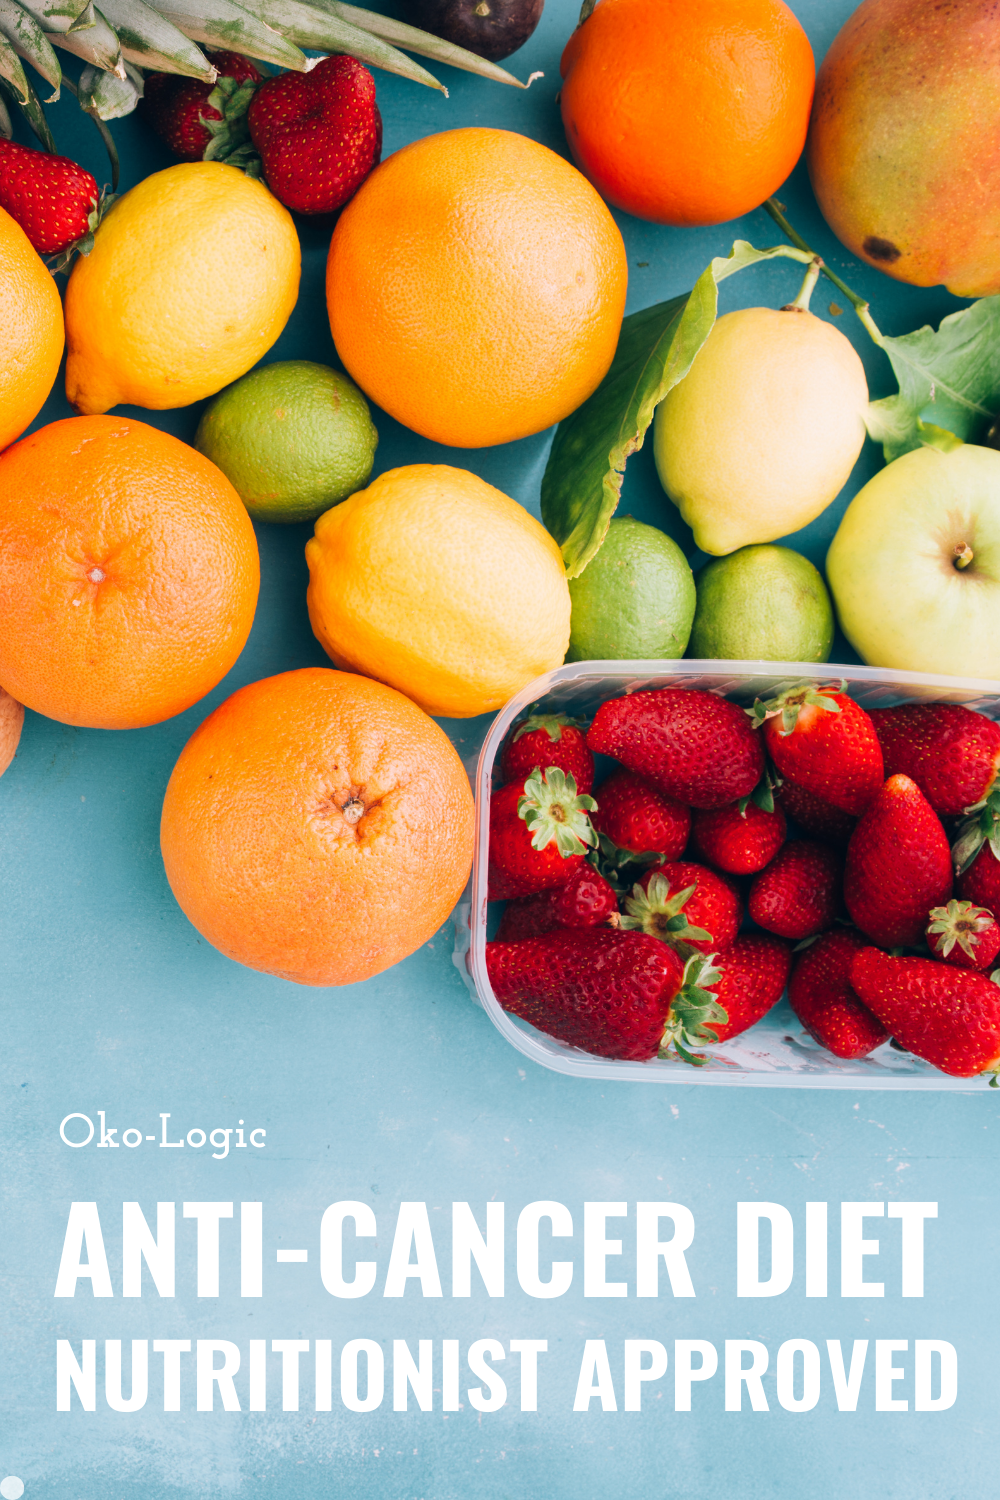 5 Key Principles of a Holistic Approach to Cancer that You Can Implement Right Now